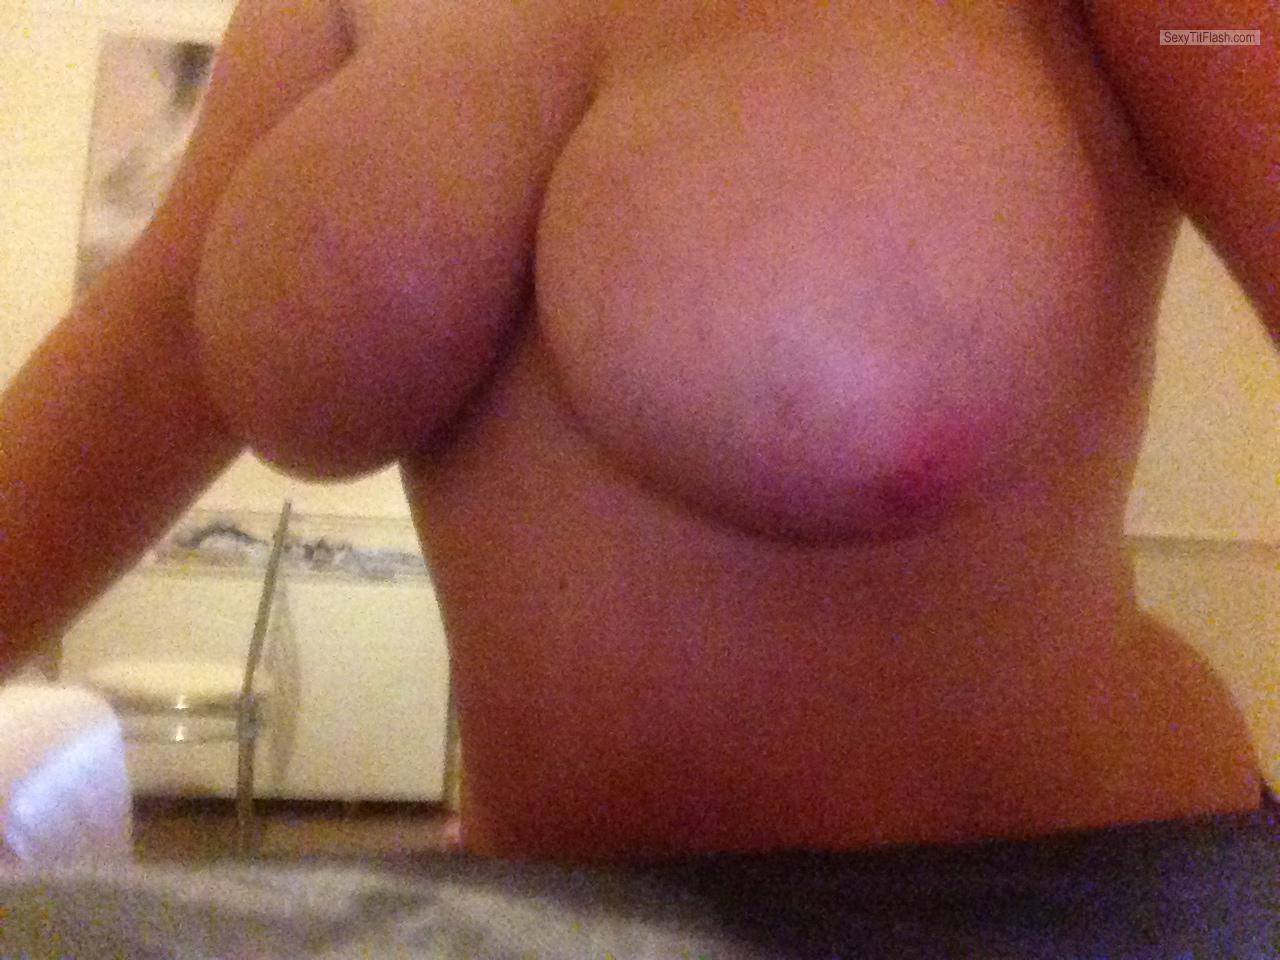 Tit Flash: My Very Big Tits - Topless Kissmynipples from United Kingdom